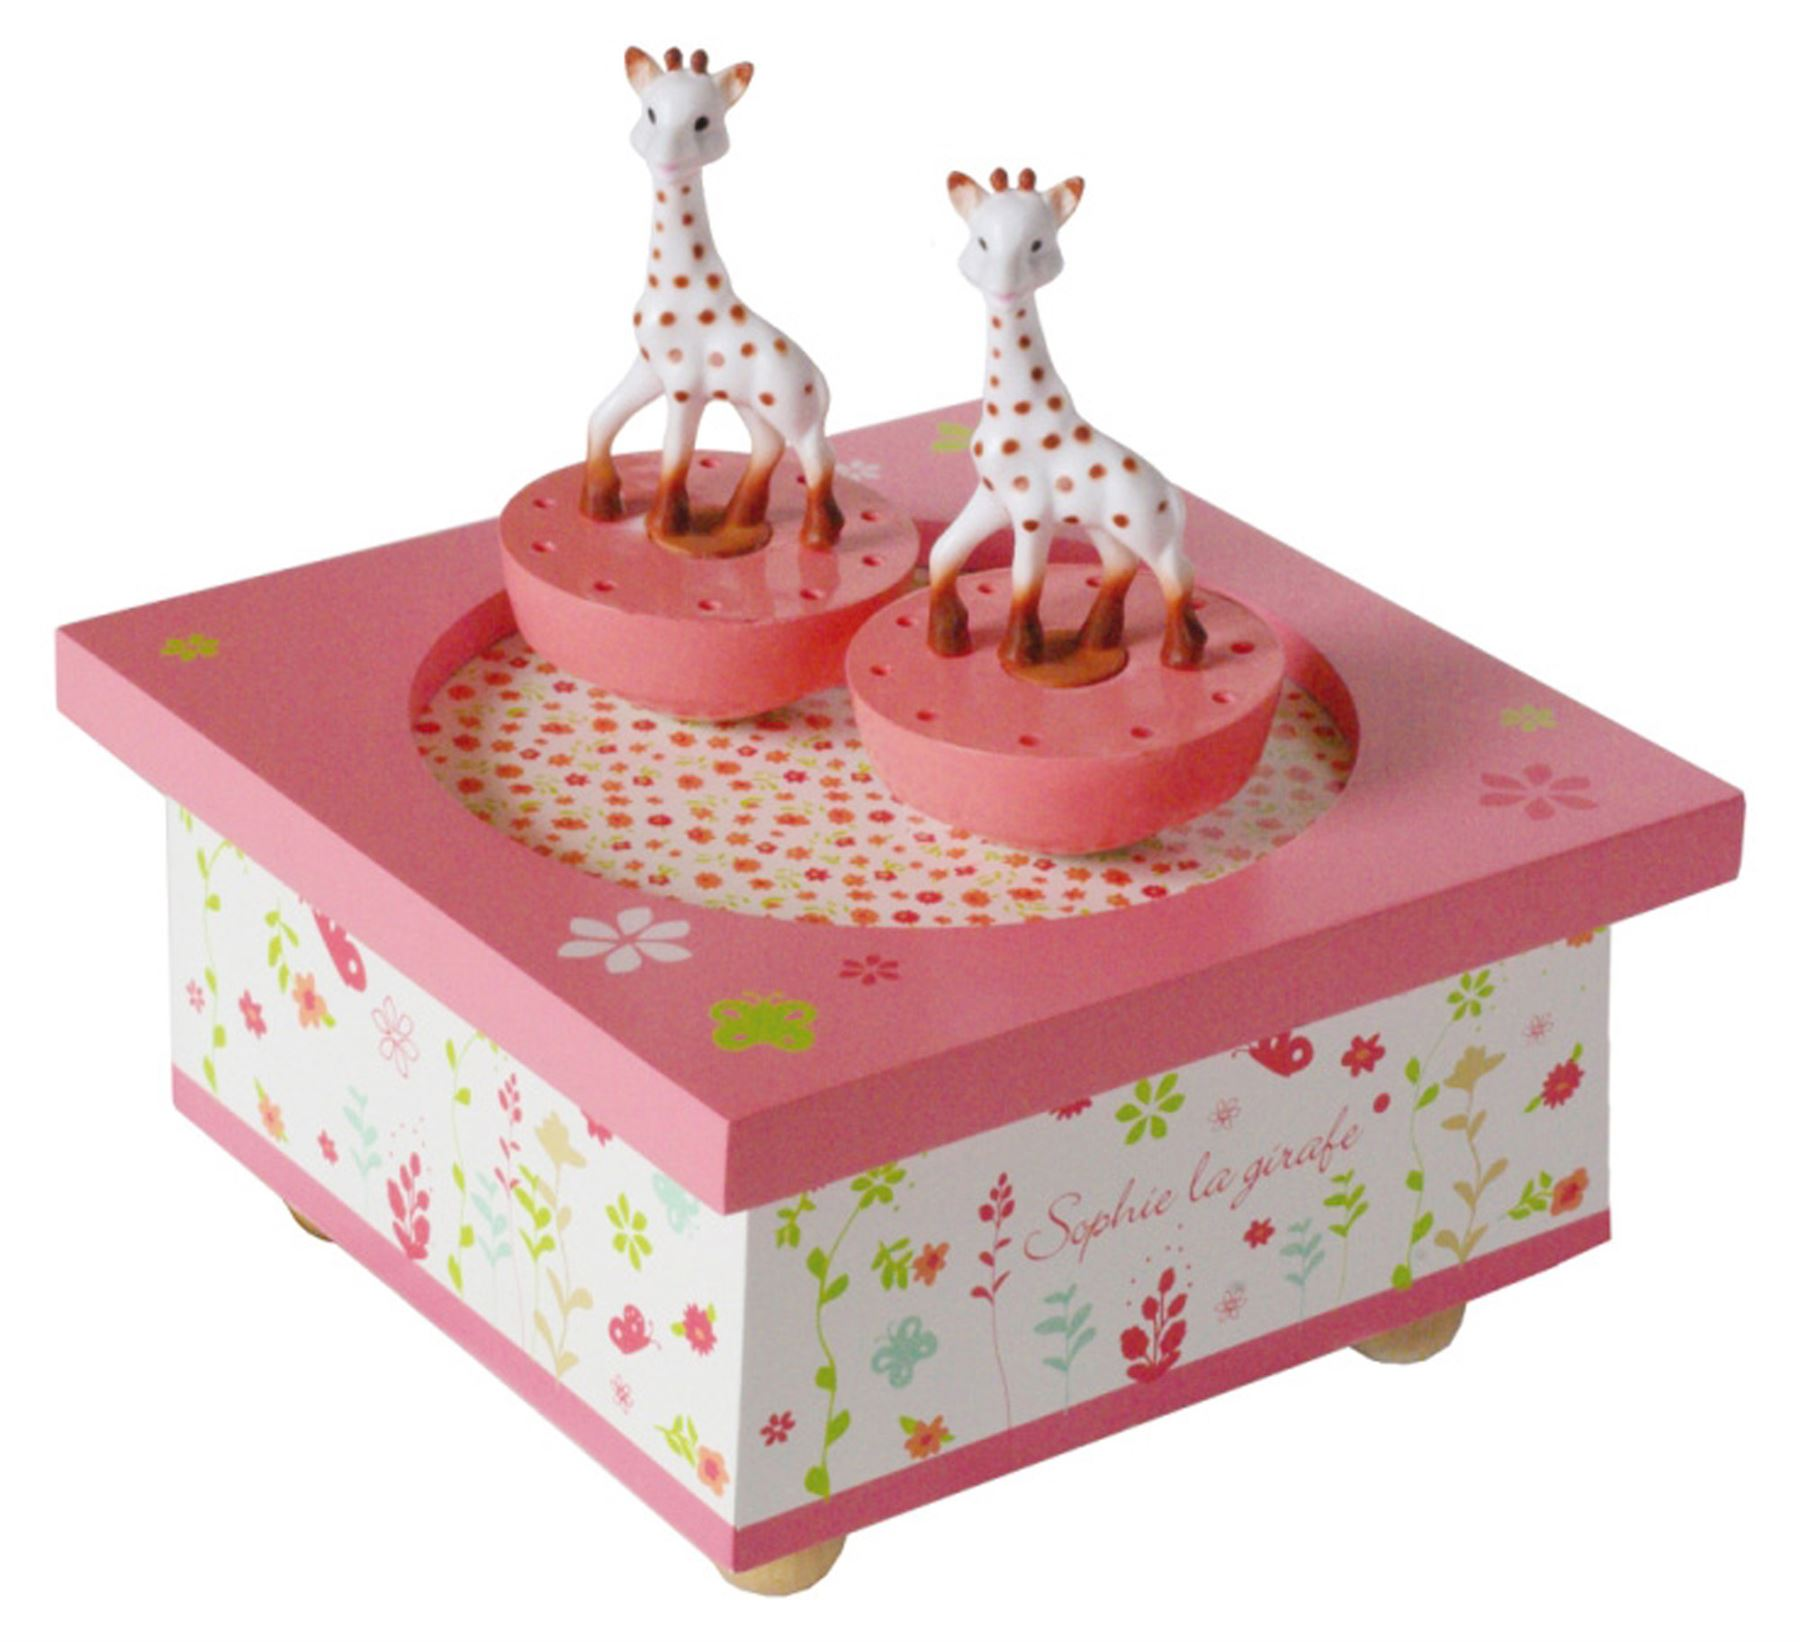 Christening & Gifts Qualified Sophie The Giraffe Spinning Music Box Baby Bn Baby